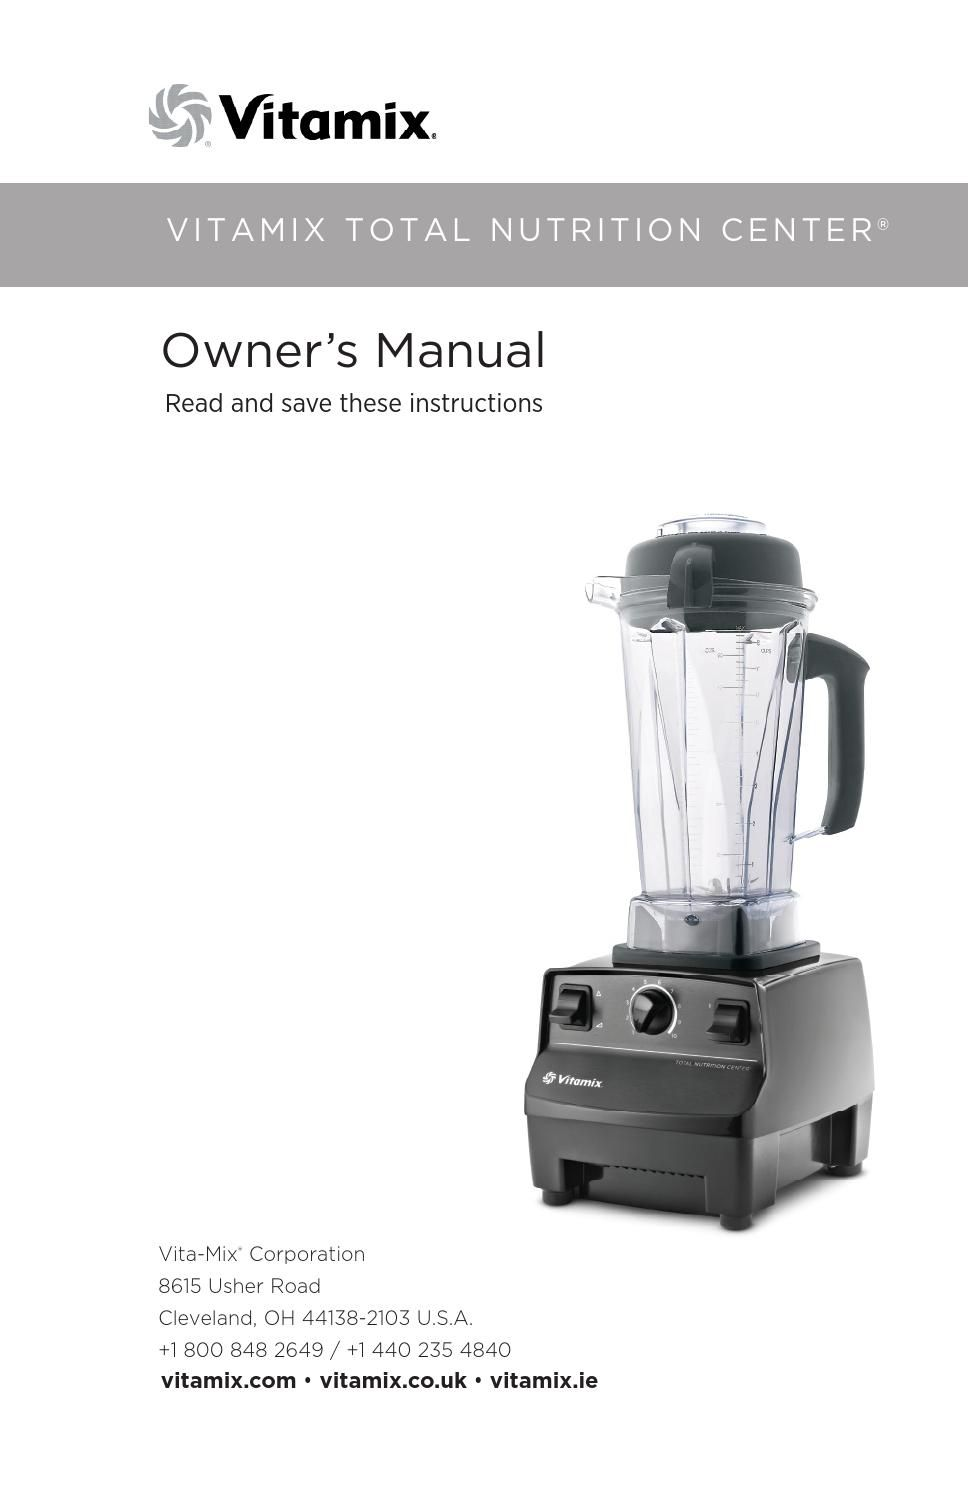 Vitamix Owners Manual Total Nutrition Center Vitamix Owners Manuals Nutrition